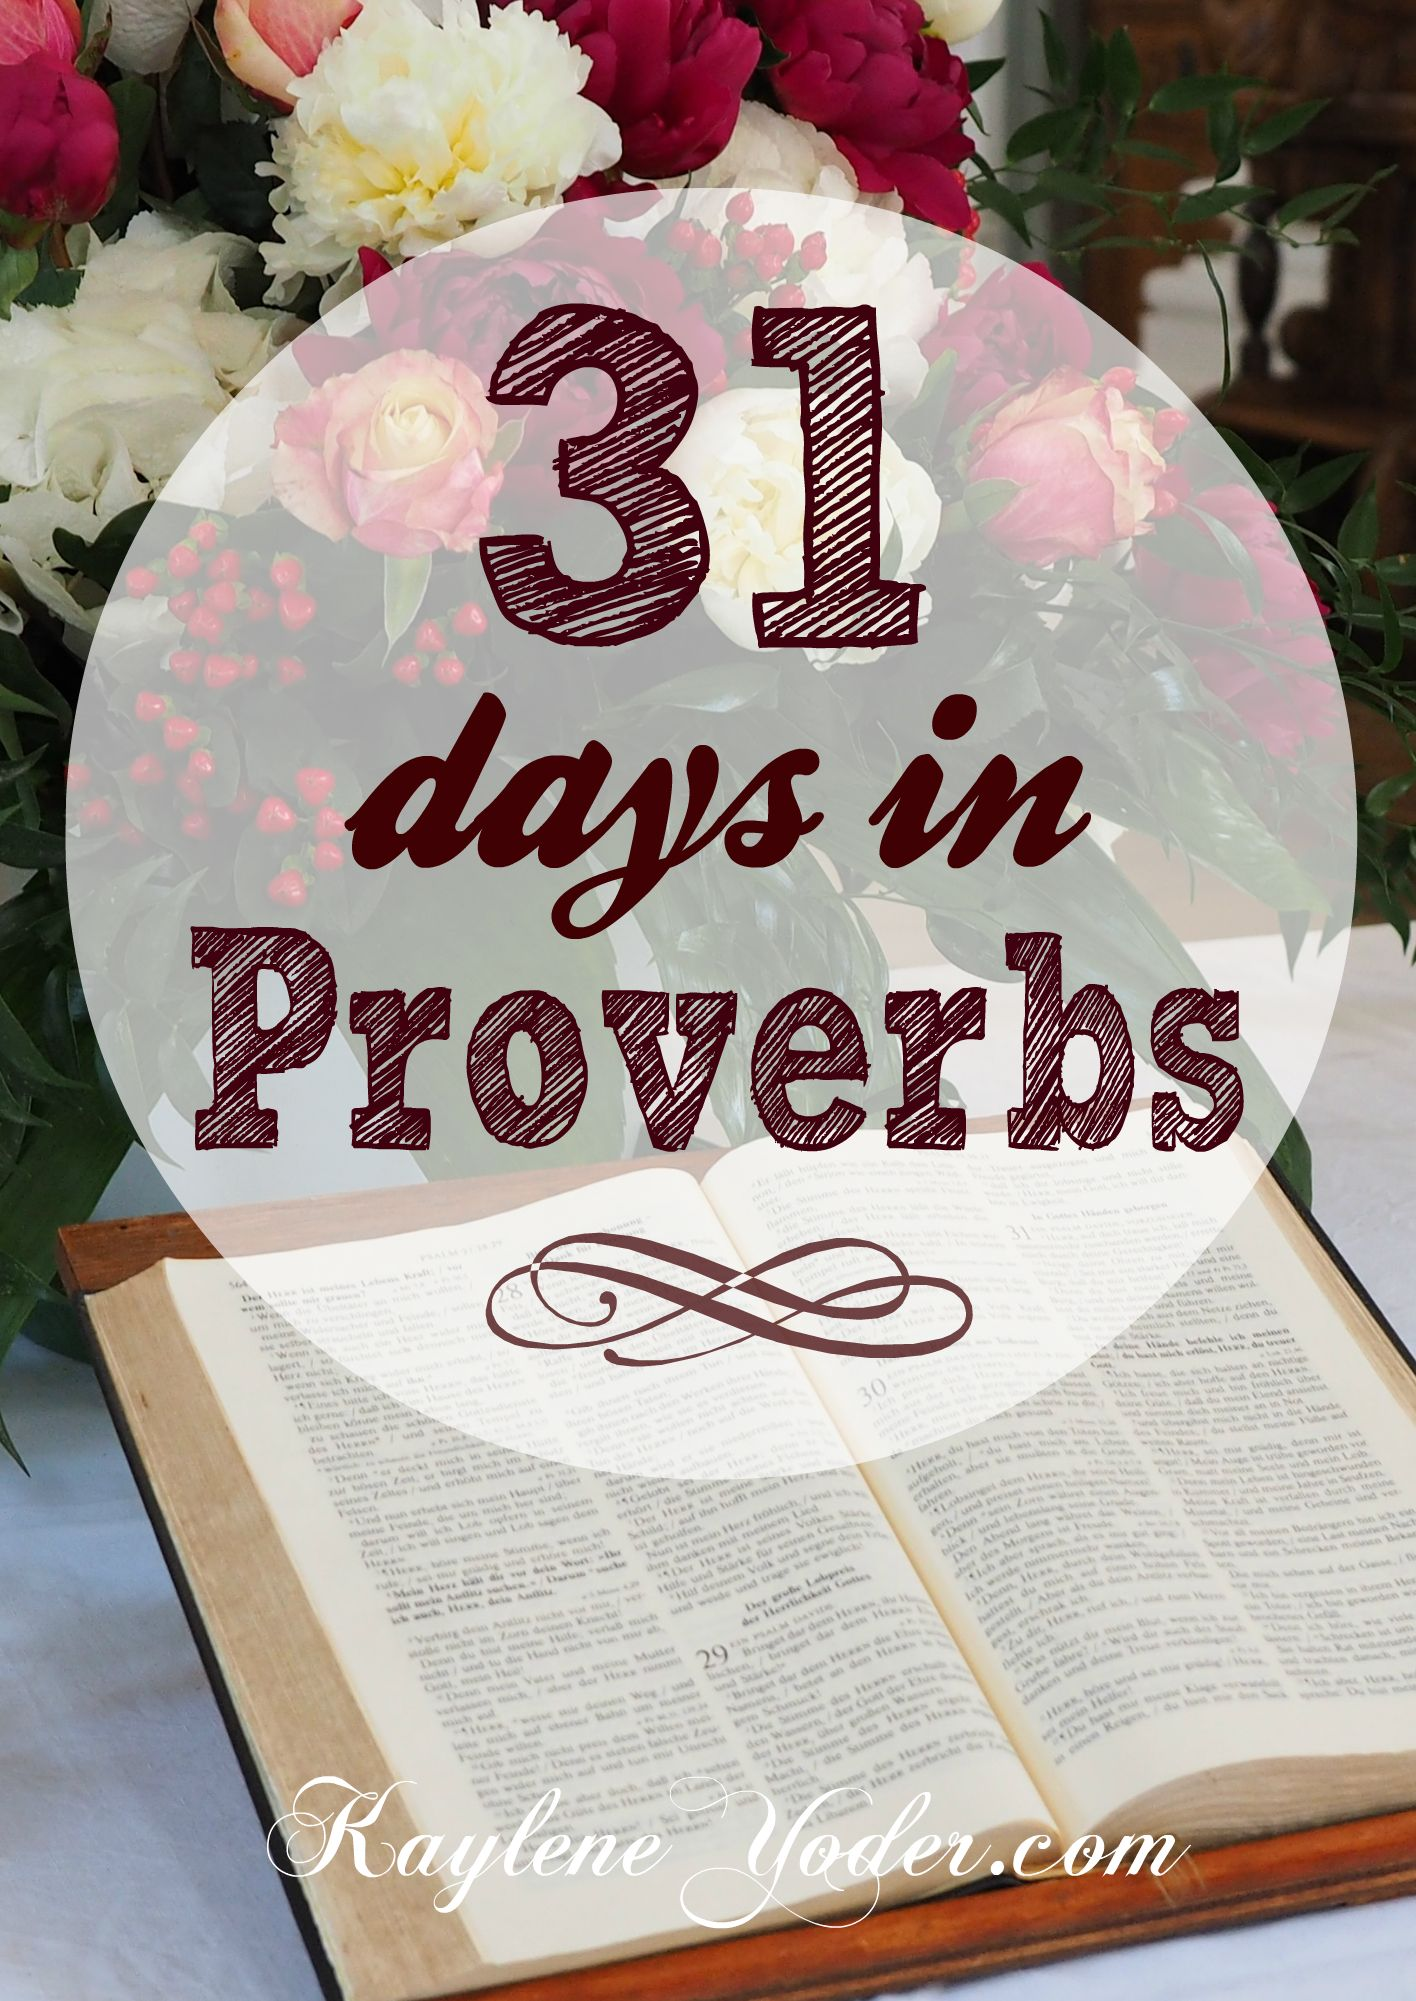 The Proverbs - Chapter 10 - Bible - Catholic Online